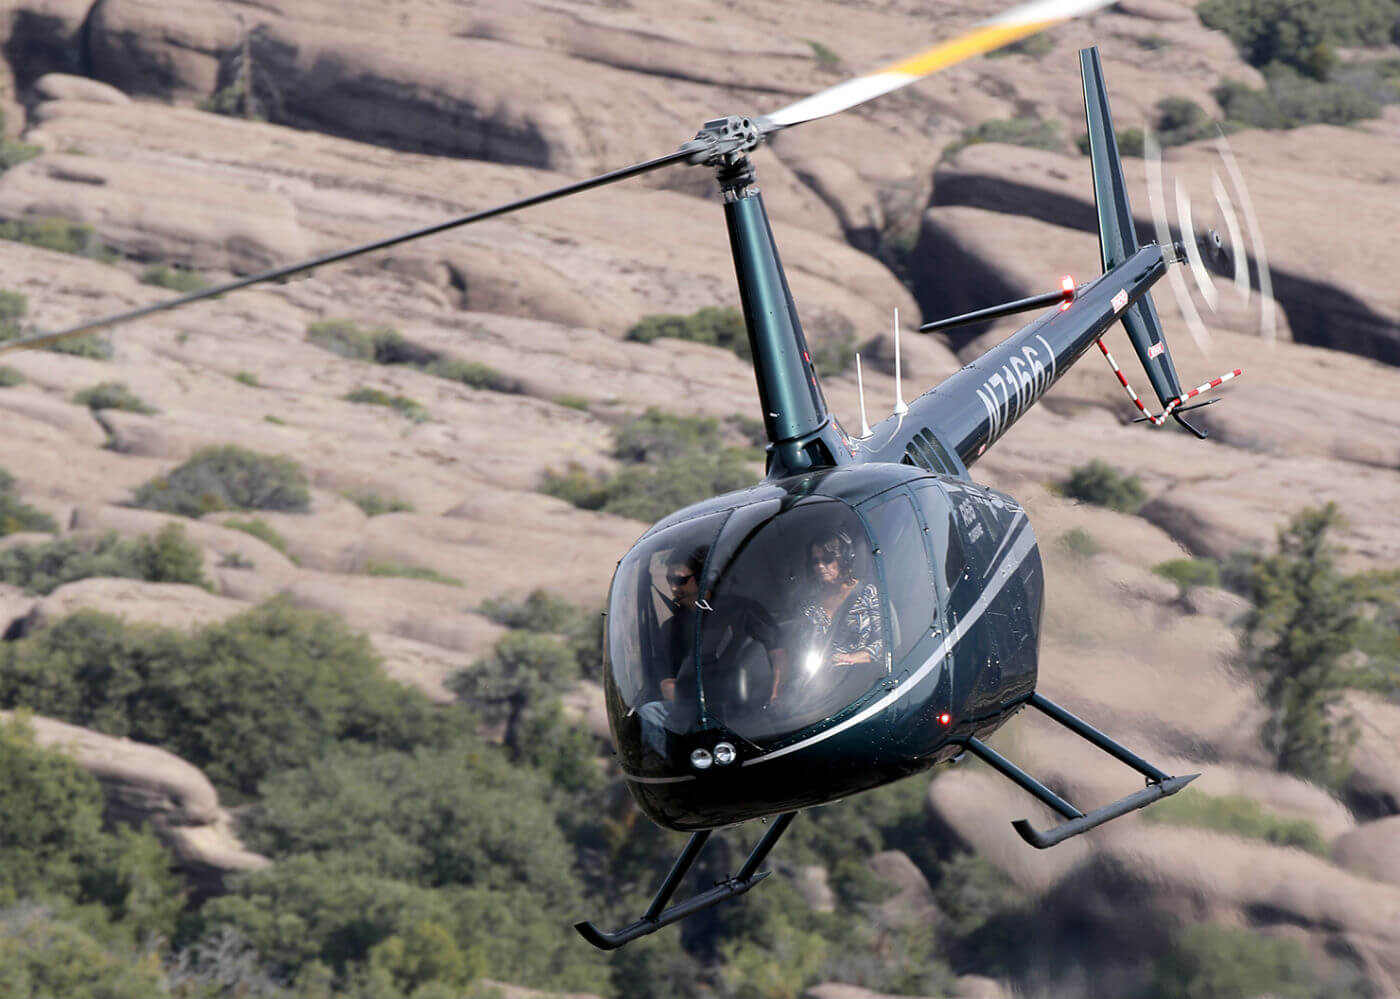 The Donaldson IBF for the Robinson R66 Turbine is available as an option in new aircraft or as a kit for retrofit, and replaces an existing Robinson filter. Donaldson Photo